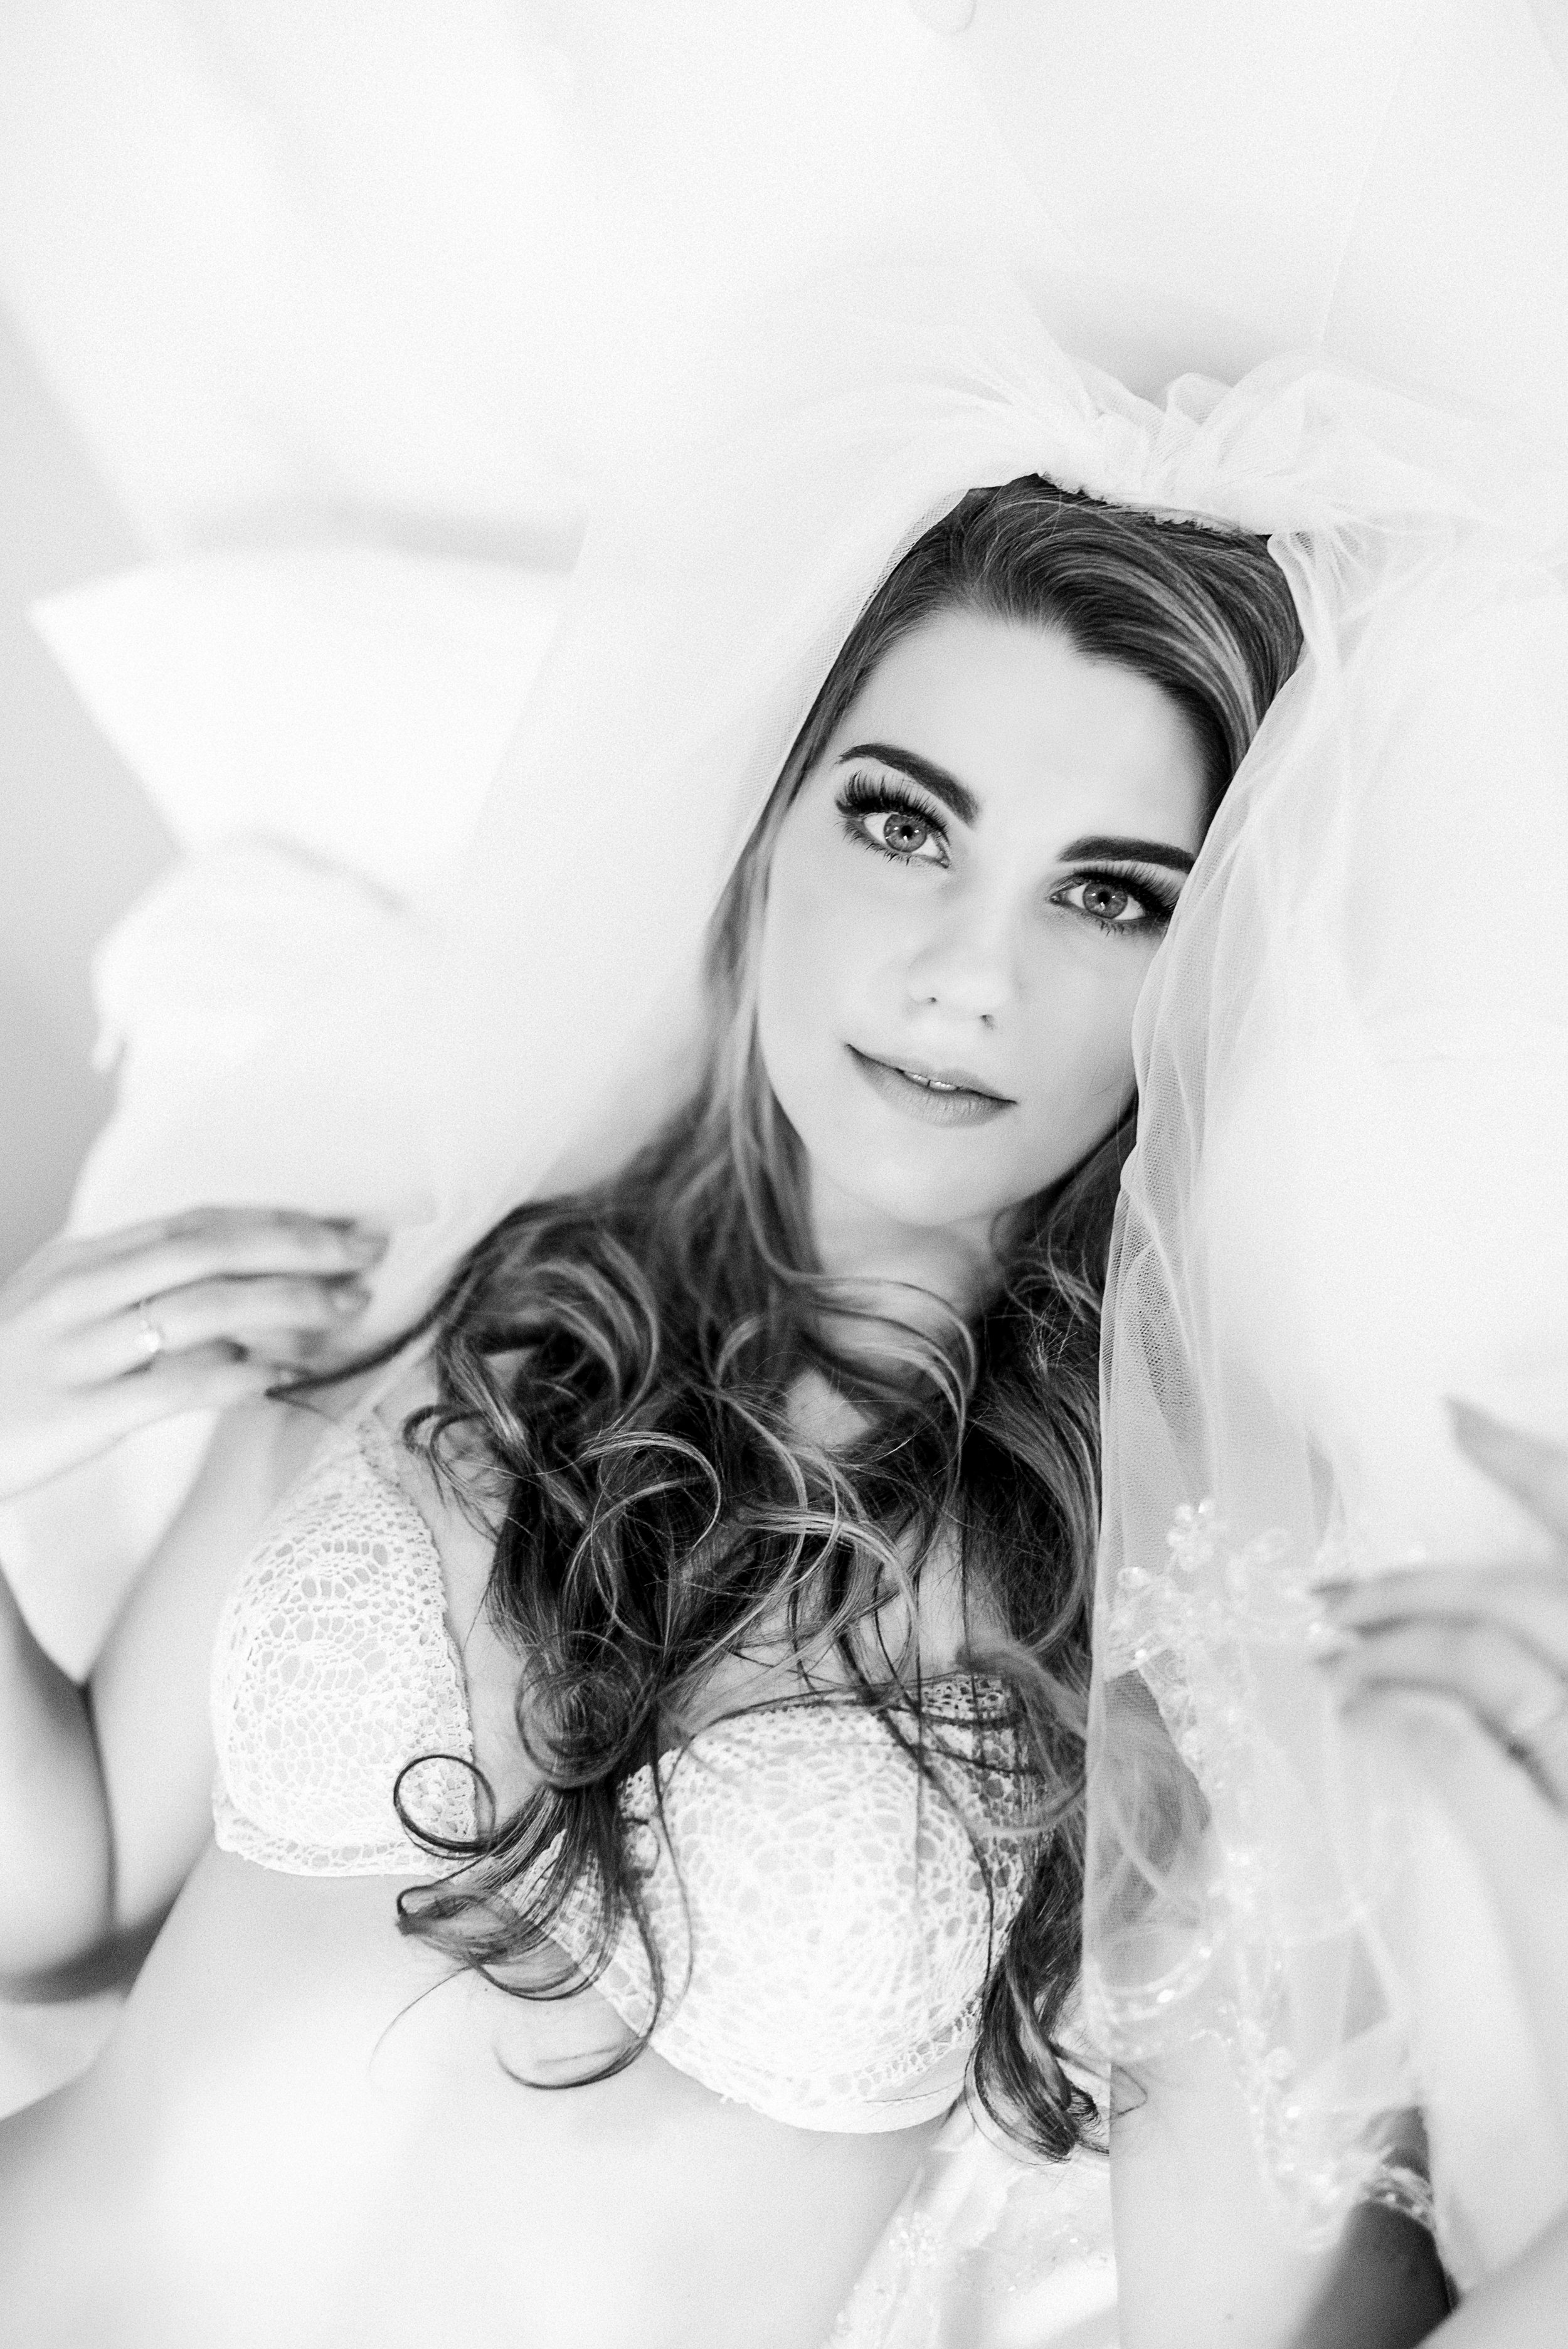 I had contacted Alex with the intentions to do a boudoir shoot with her as an anniversary gift for my husband. That was a HUGE deal because my insecurities tend to run my life. Alex was excited to meet and do a consultation to discuss the shoot so she can get why style you like, I'm a more modest type of person and she was all for it! While at the consultation she asked me why I was doing this shoot, so I told her. She was all for it as a gift, however she said it needed to be for me and not him. I sort of got where she was coming from and agreed. When it came time to do the shoot she had all of my favorite snacks, drinks, music and everything else you can think of! I sat there getting my hair and makeup done and picking out what to wear first. There were lots of laughs and stories exchanged. I was VERY nervous when it was time to start shooting. She was very reassuring and explained just what I needed to do and how to lose me. We talked and laughed throughout the whole thing. It was a truly liberating thing to have a whole day spent on ME, I never pamper myself, so I walked out feeling like a million bucks. Then came the revealing session. I think I was more nervous to see what they looked like than the actual shoot. We sat in her office and looked through the whole set of photos. I didn't say much, which was probably terrifying to her, but it was because I truly didn't know what to think or say. That was me, that's how my husband and friends and family see me when they tell me I'm beautiful. I had truly never loved a photo of myself before, and now all of a sudden I was looking at photo after photo where I felt beautiful and saw what everyone else saw. It was such a life changing experience, truly. I went from hating the beach because people could see me, to wanting to plaster my photos all over the place. For anyone who is even slightly considering a boudoir shoot, DO IT! And do it with Alex! Don't contemplate it, do it! It's a truly liberating and life changing 